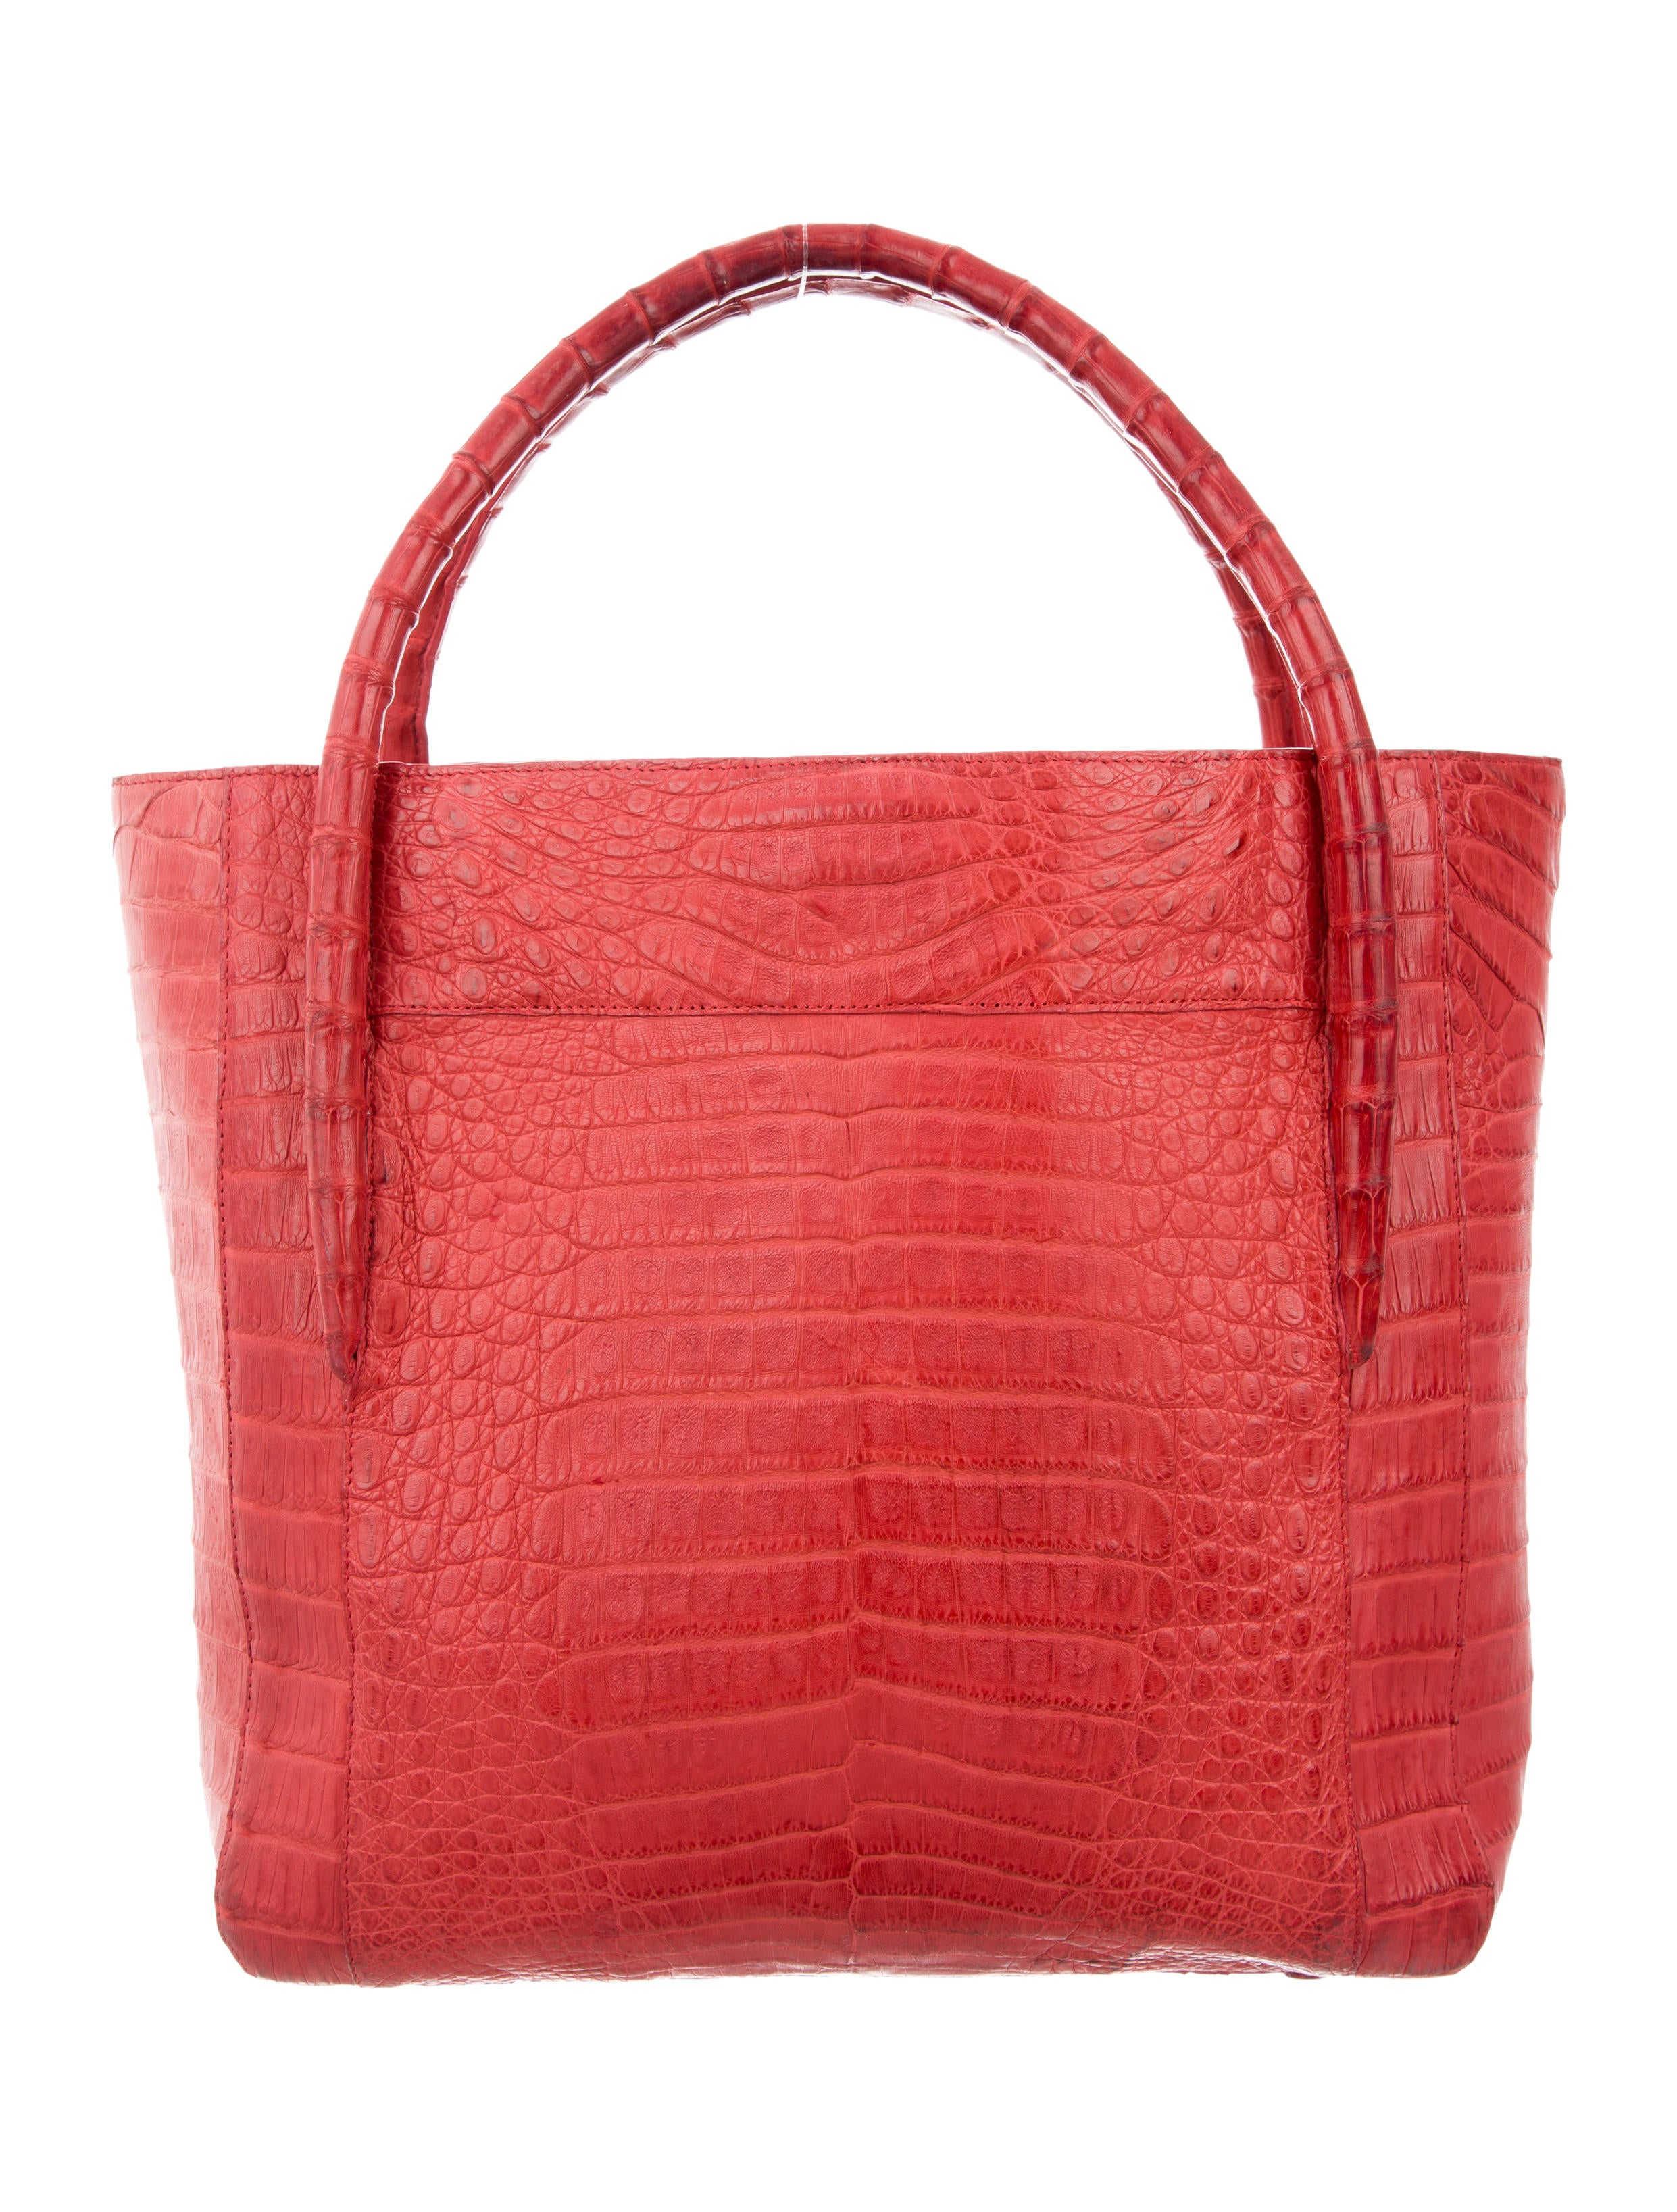 Nancy gonzalez small crocodile tote handbags nan23756 for Nancy gonzalez crocodile tote